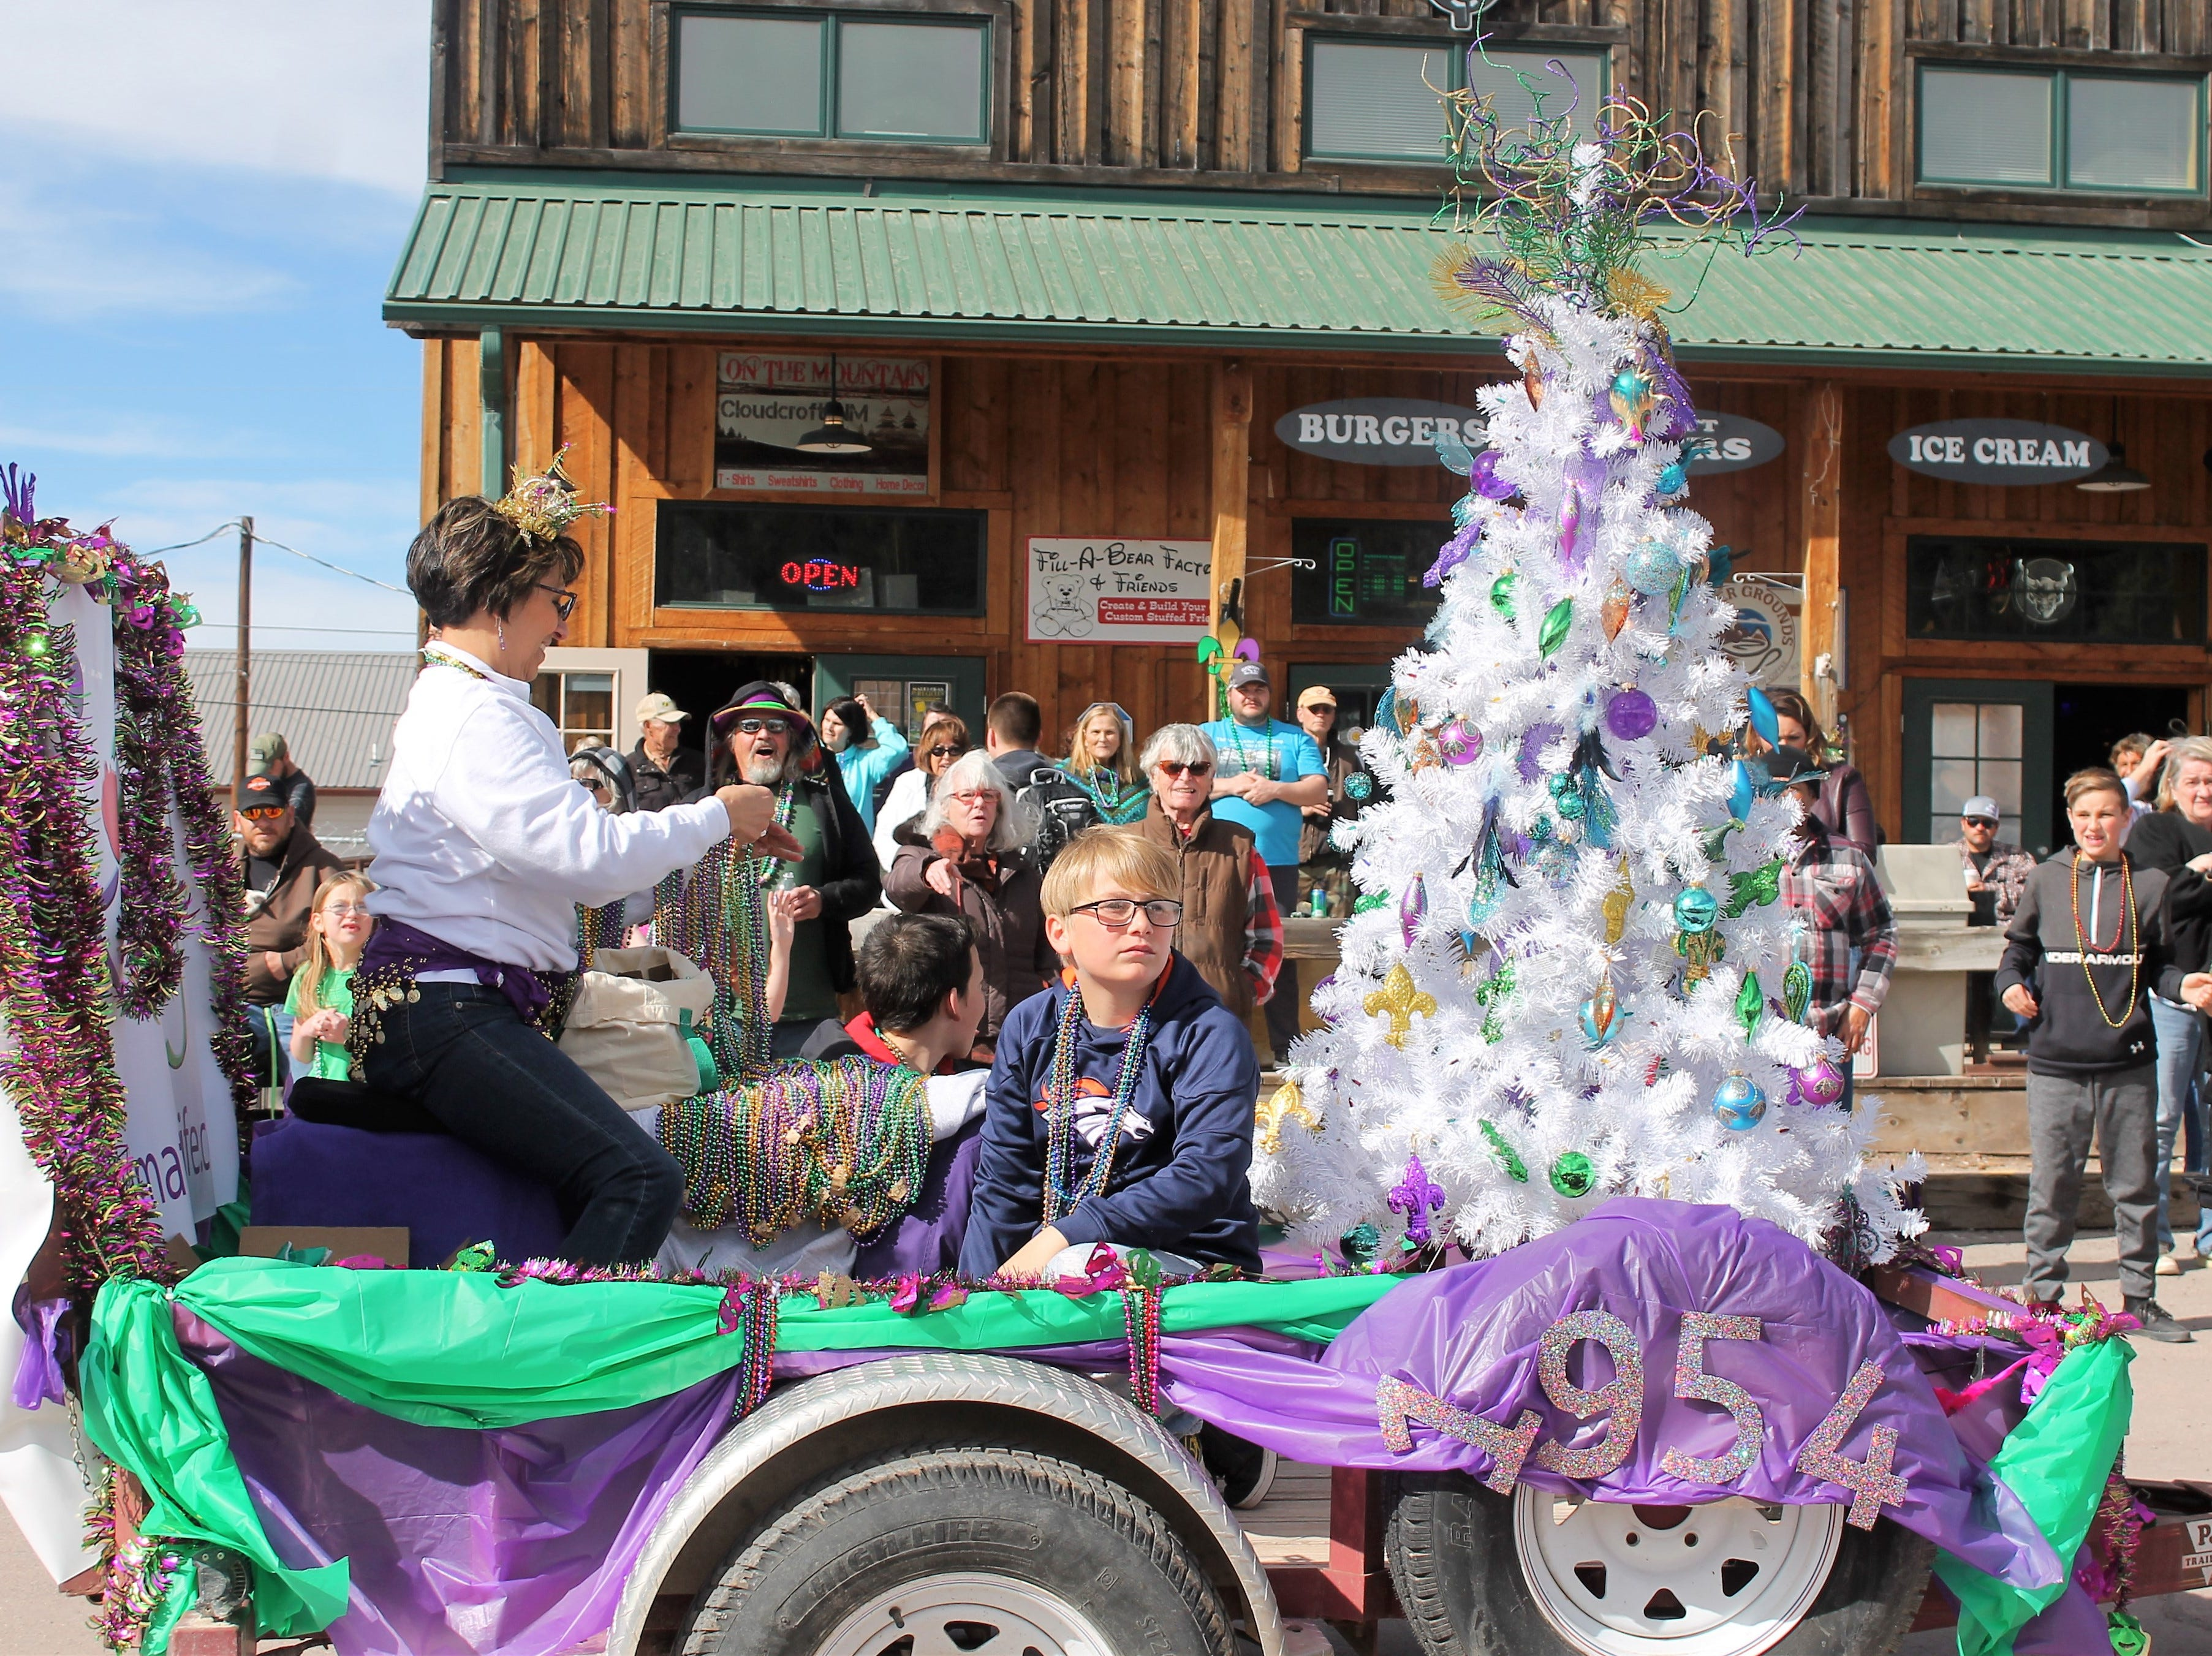 The Ultimate Gift of Life's float at the Mardi Gras Parade in Cloudcroft Saturday featured the year 1954 as that was the year that the first organ donation occurred.